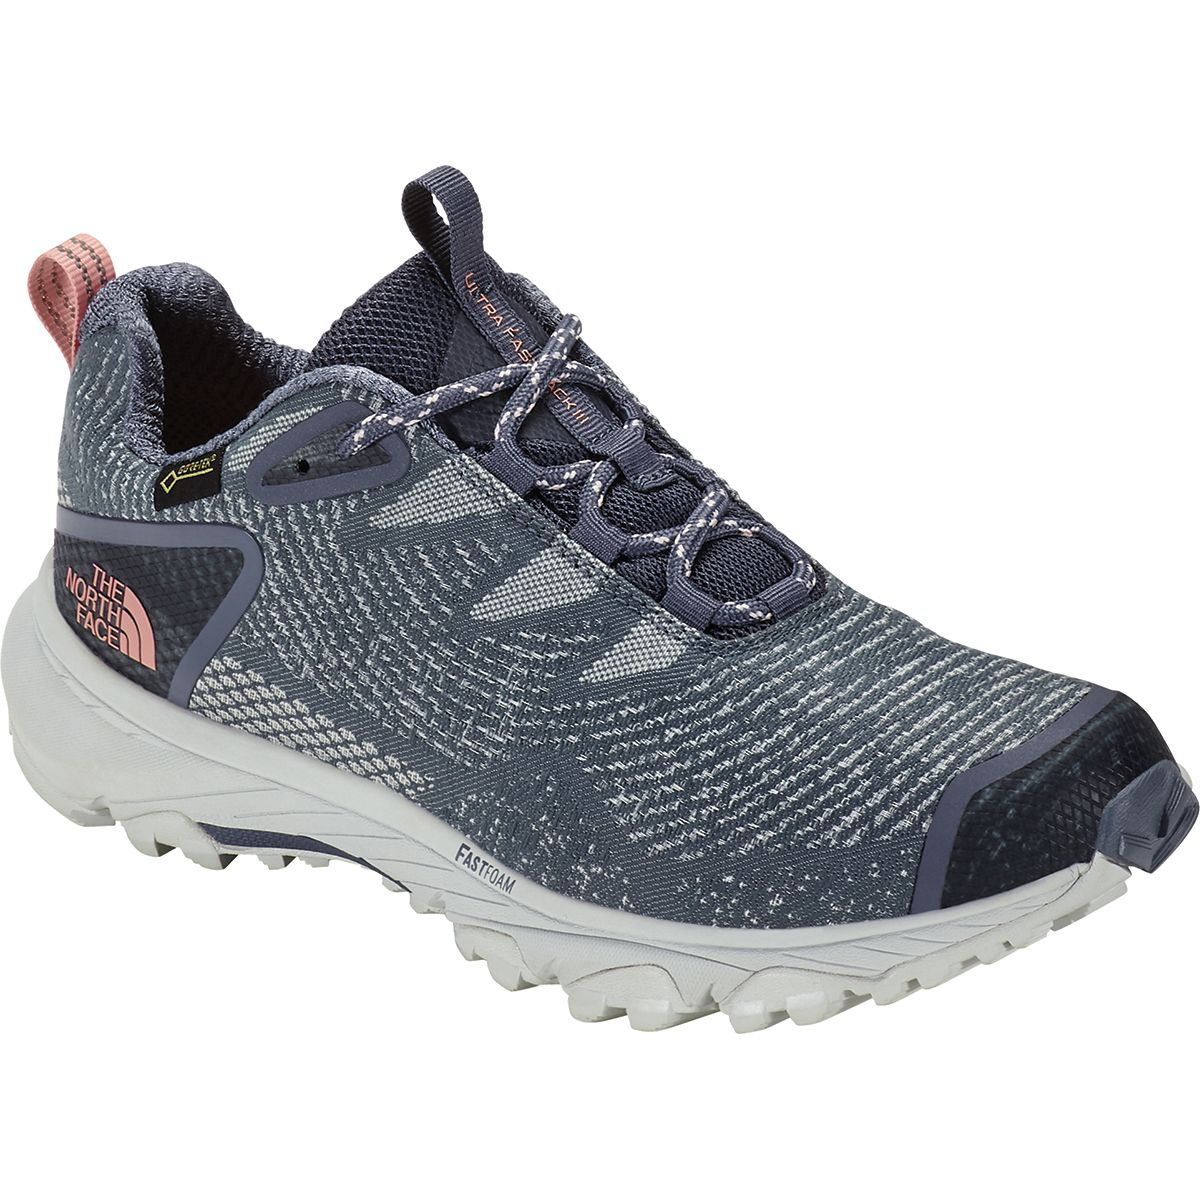 The North Face Ultra Fastpack III GTX Woven